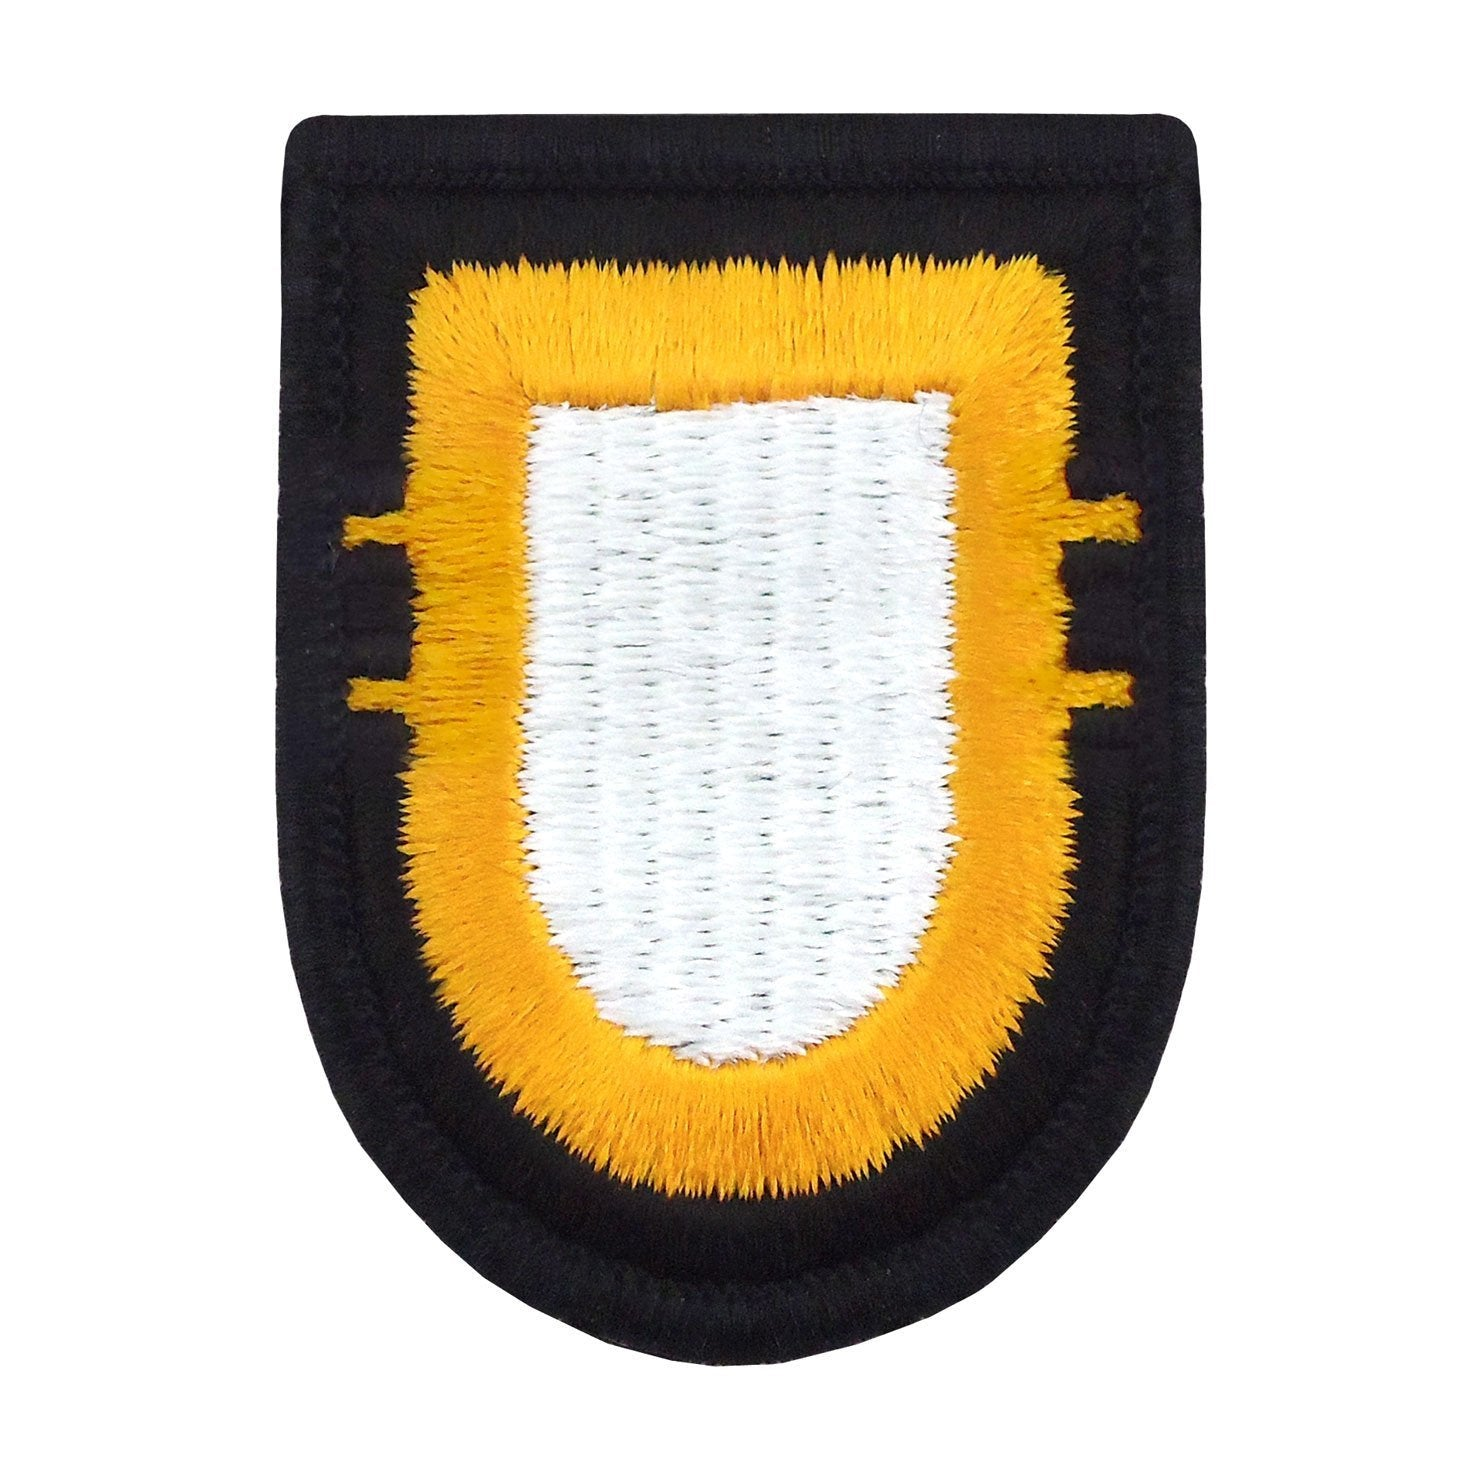 Patches and Service Stripes - 101st Airborne Division, 2nd  Brigade Beret Flash -   jetcube